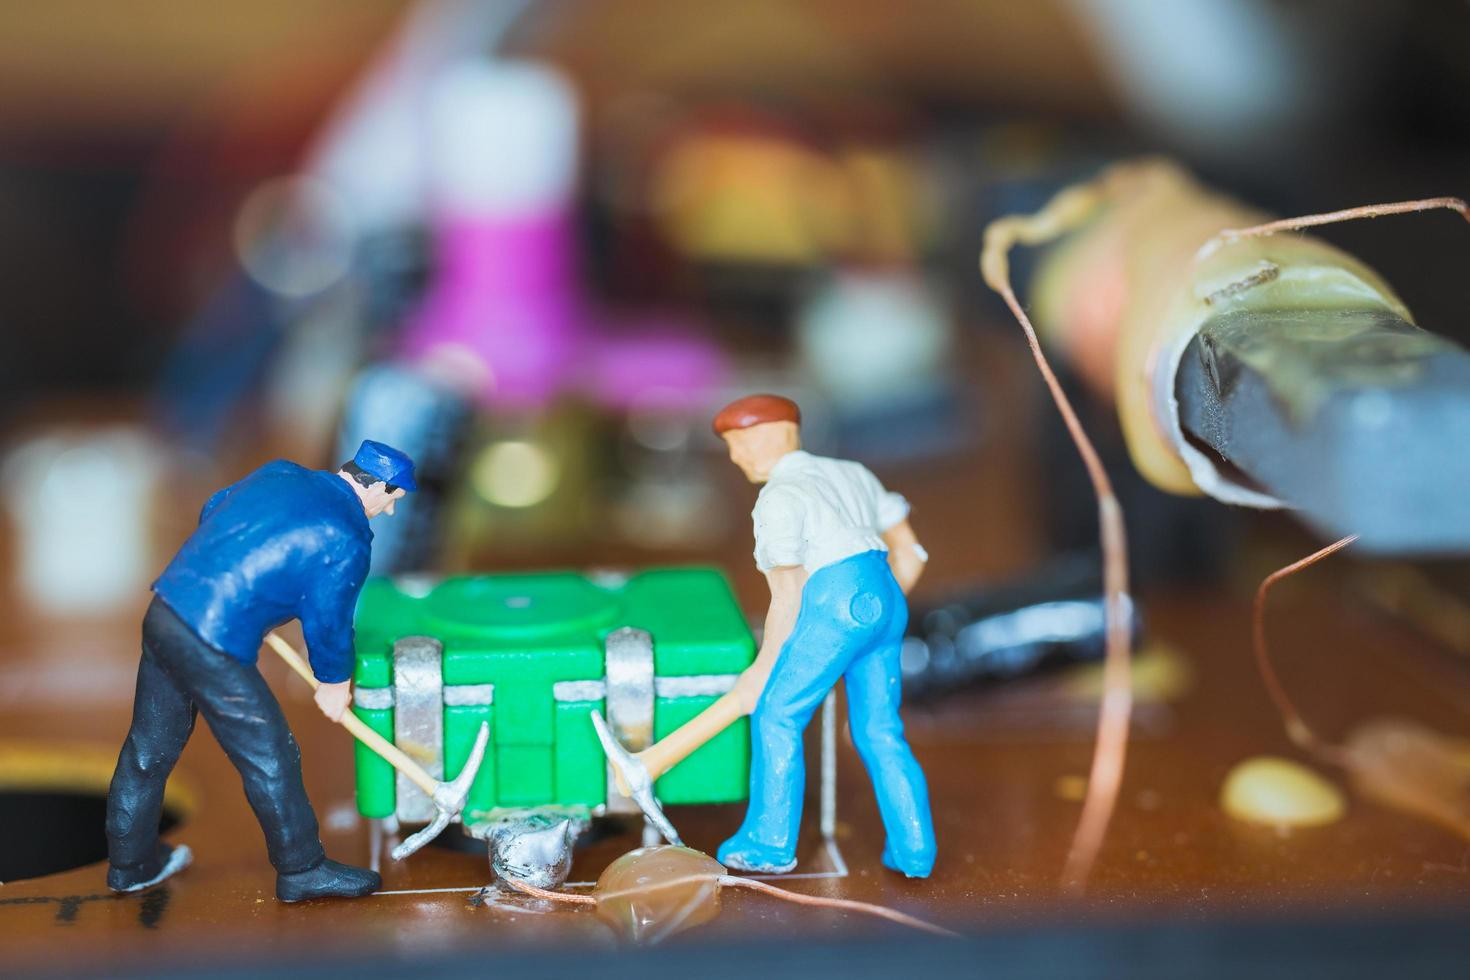 Miniature workers teaming up to repair electronic circuits, construction workers concept photo